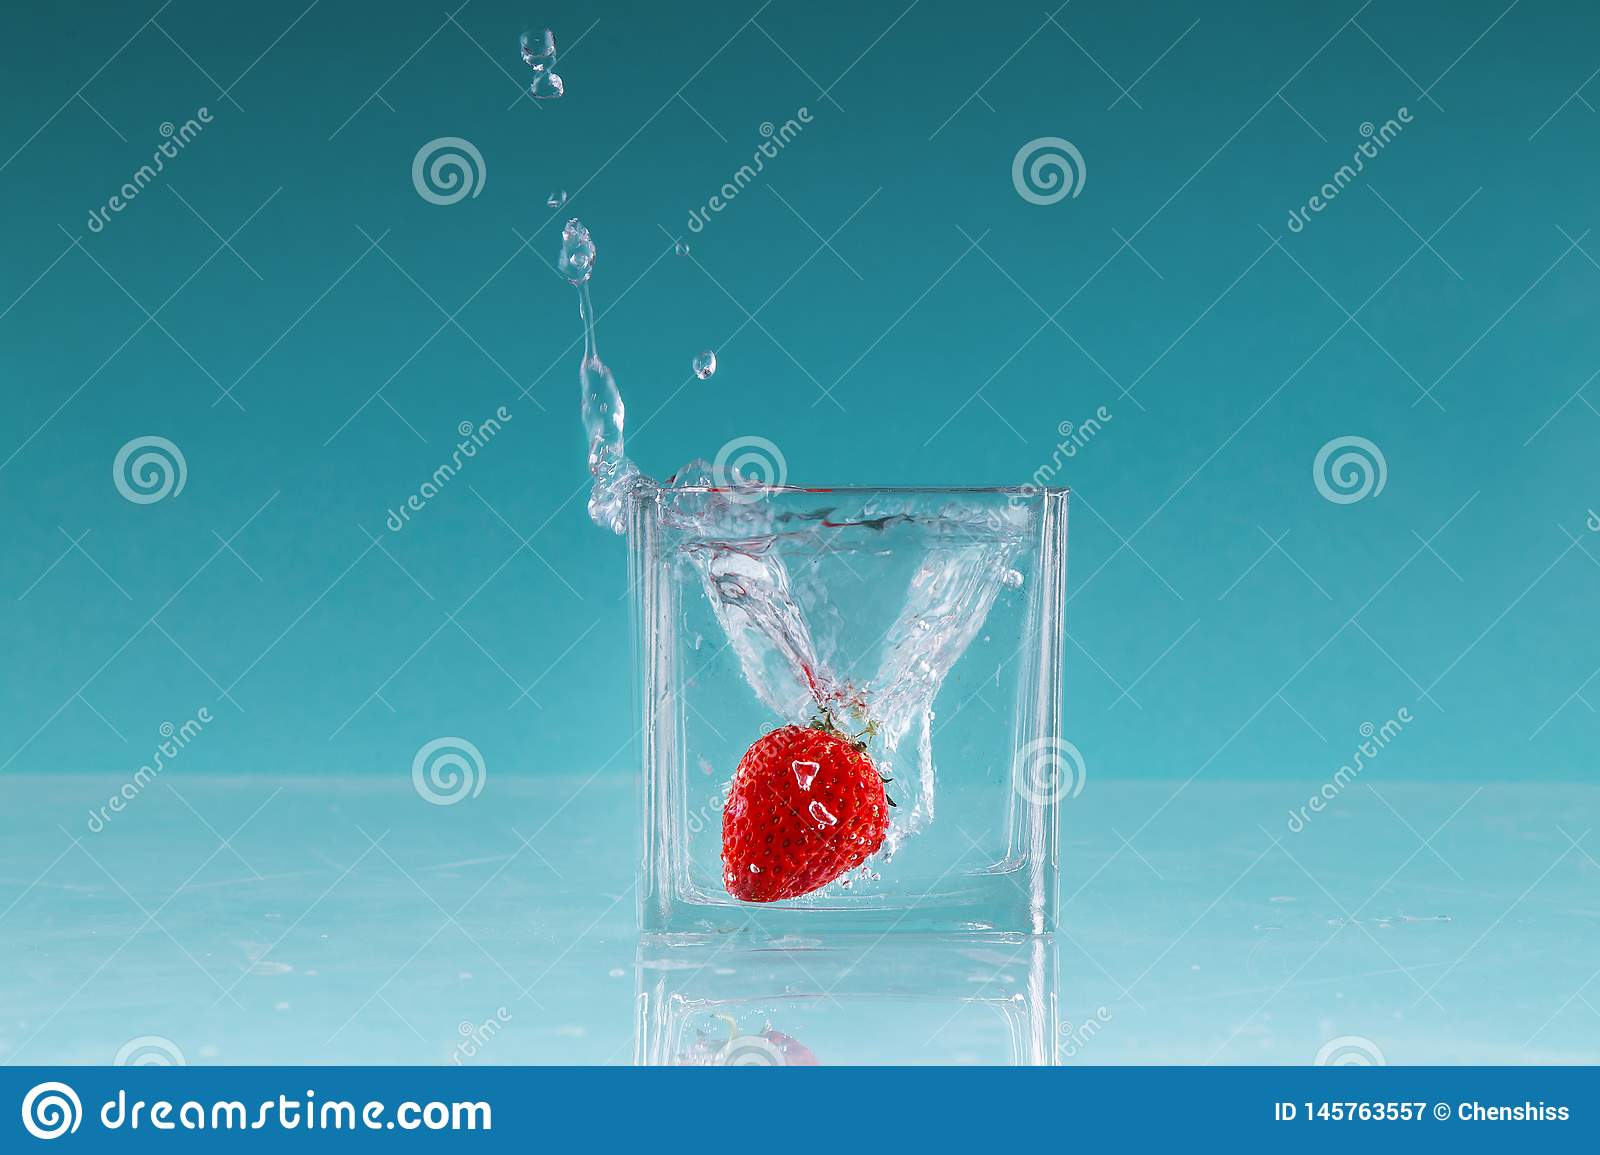 Strawberry fruit High speed photography